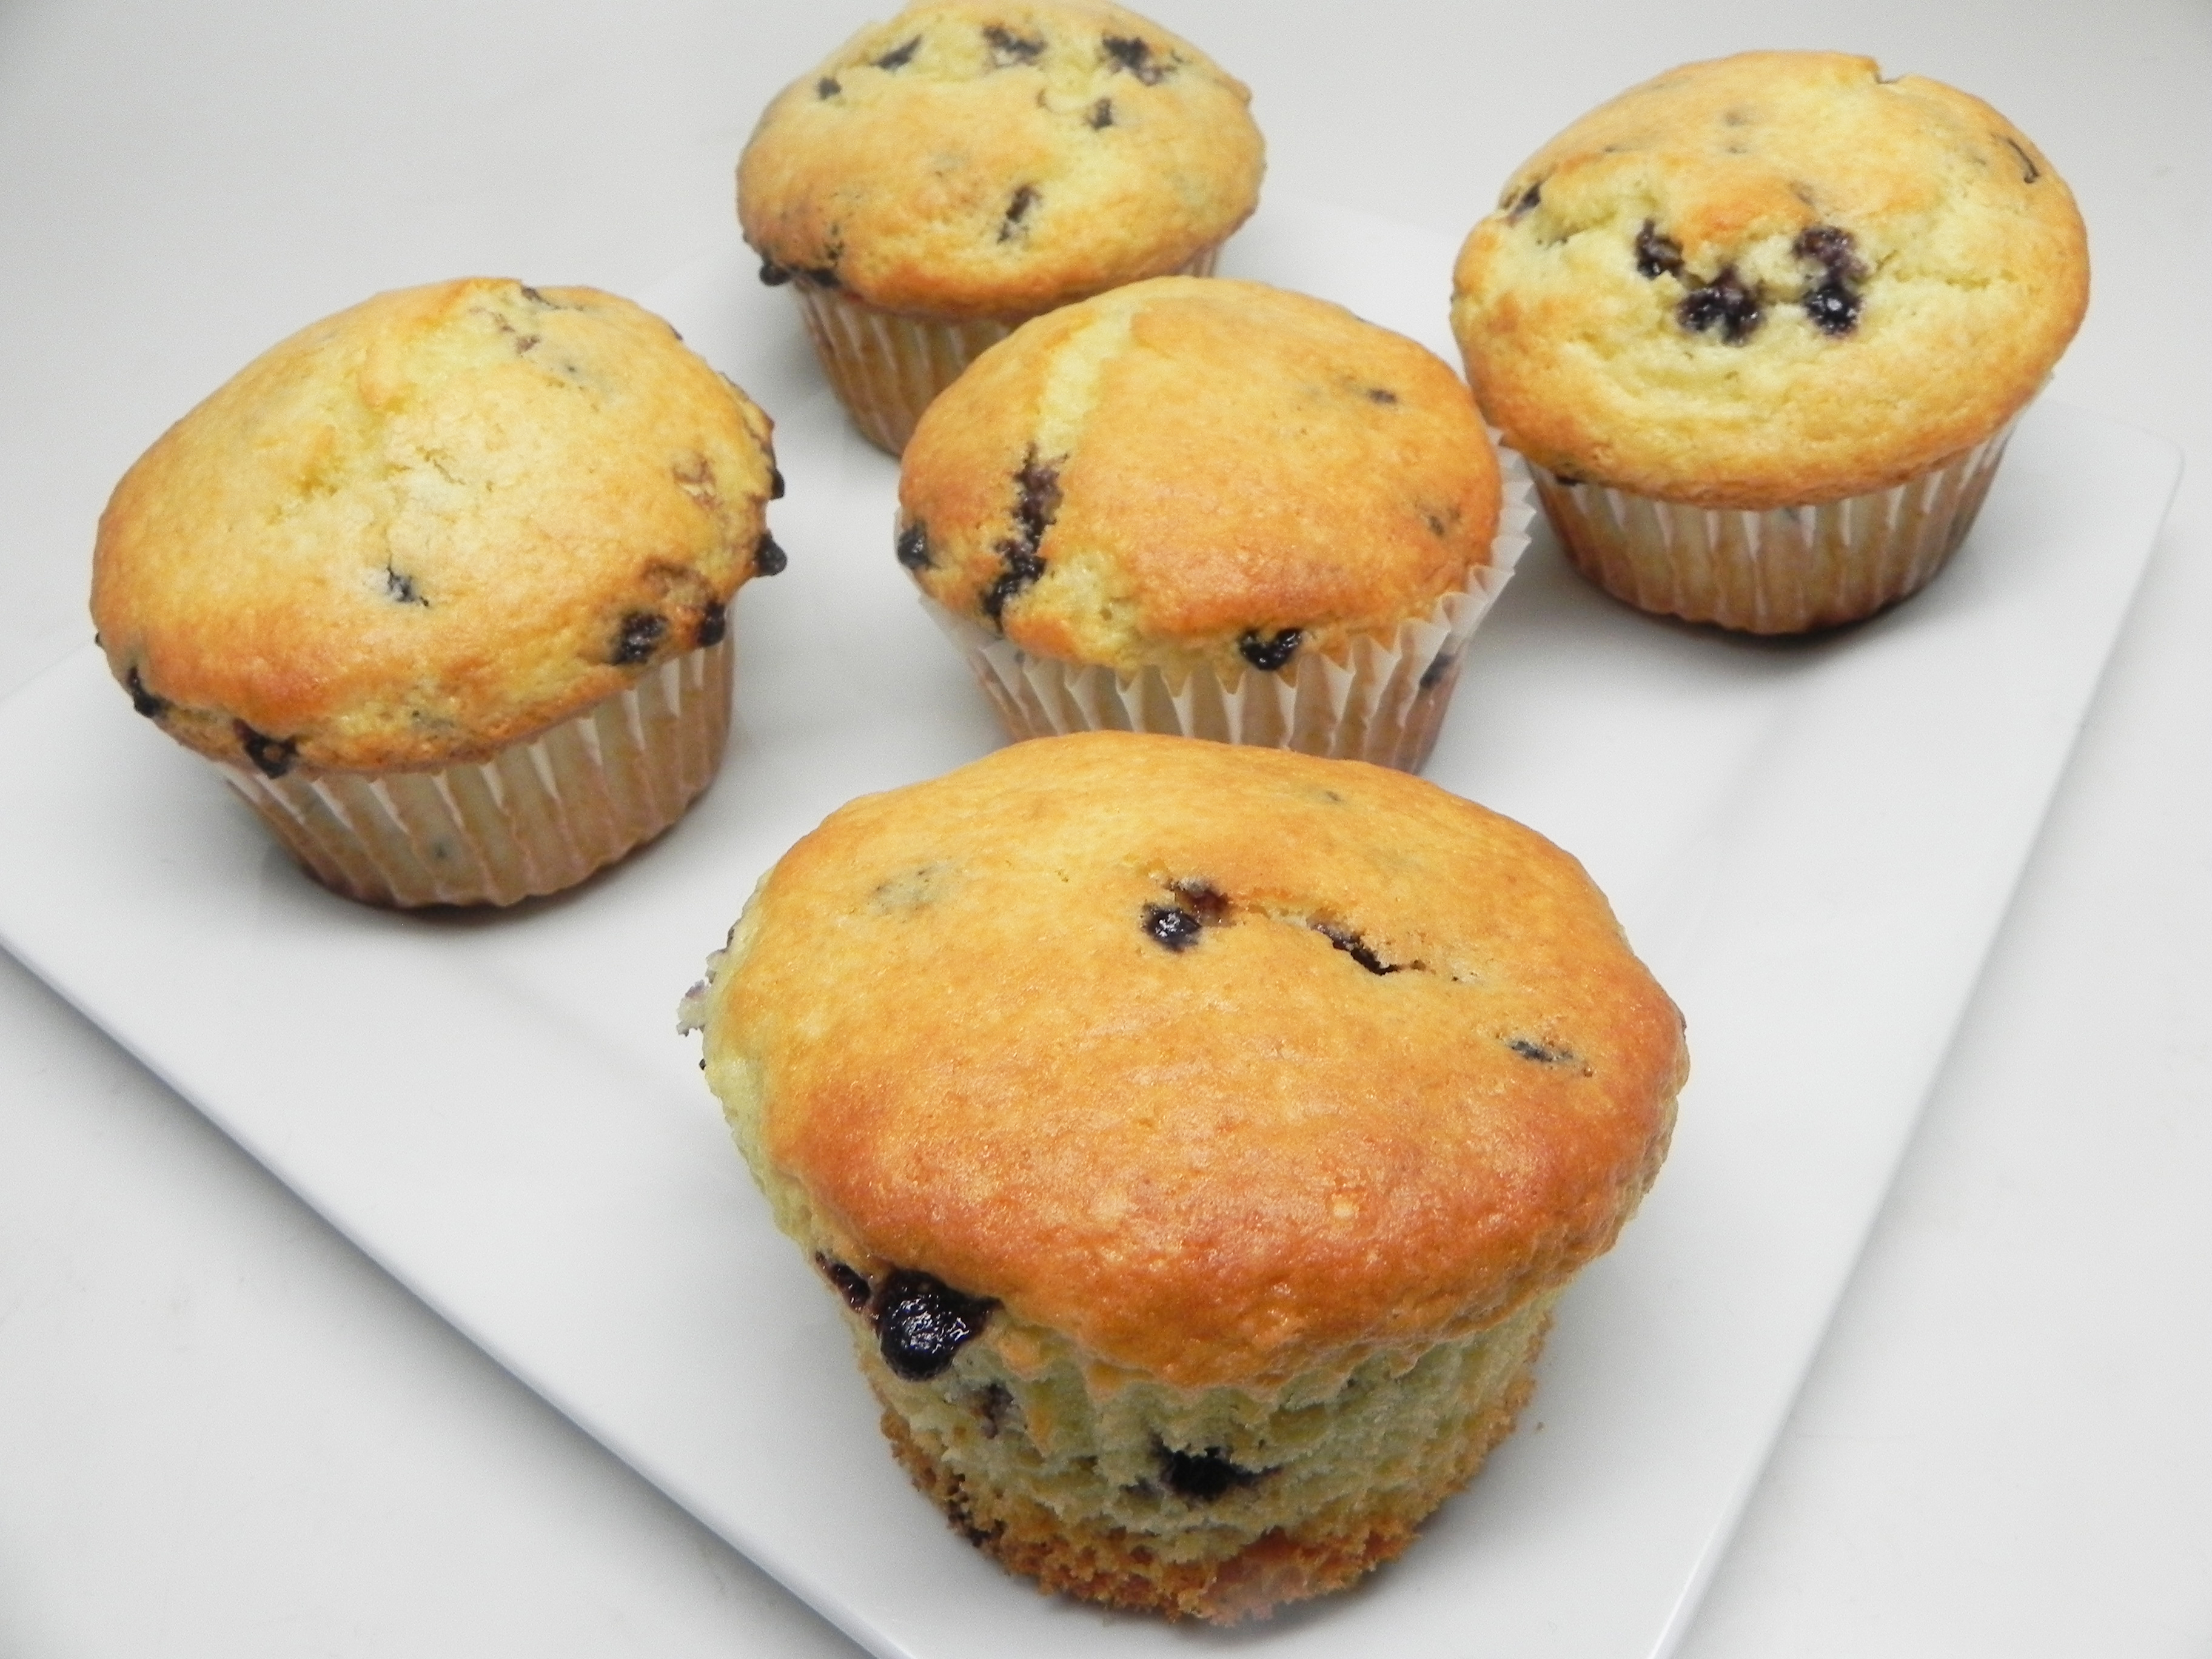 Vegan Blueberry Muffins with Applesauce Soup Loving Nicole